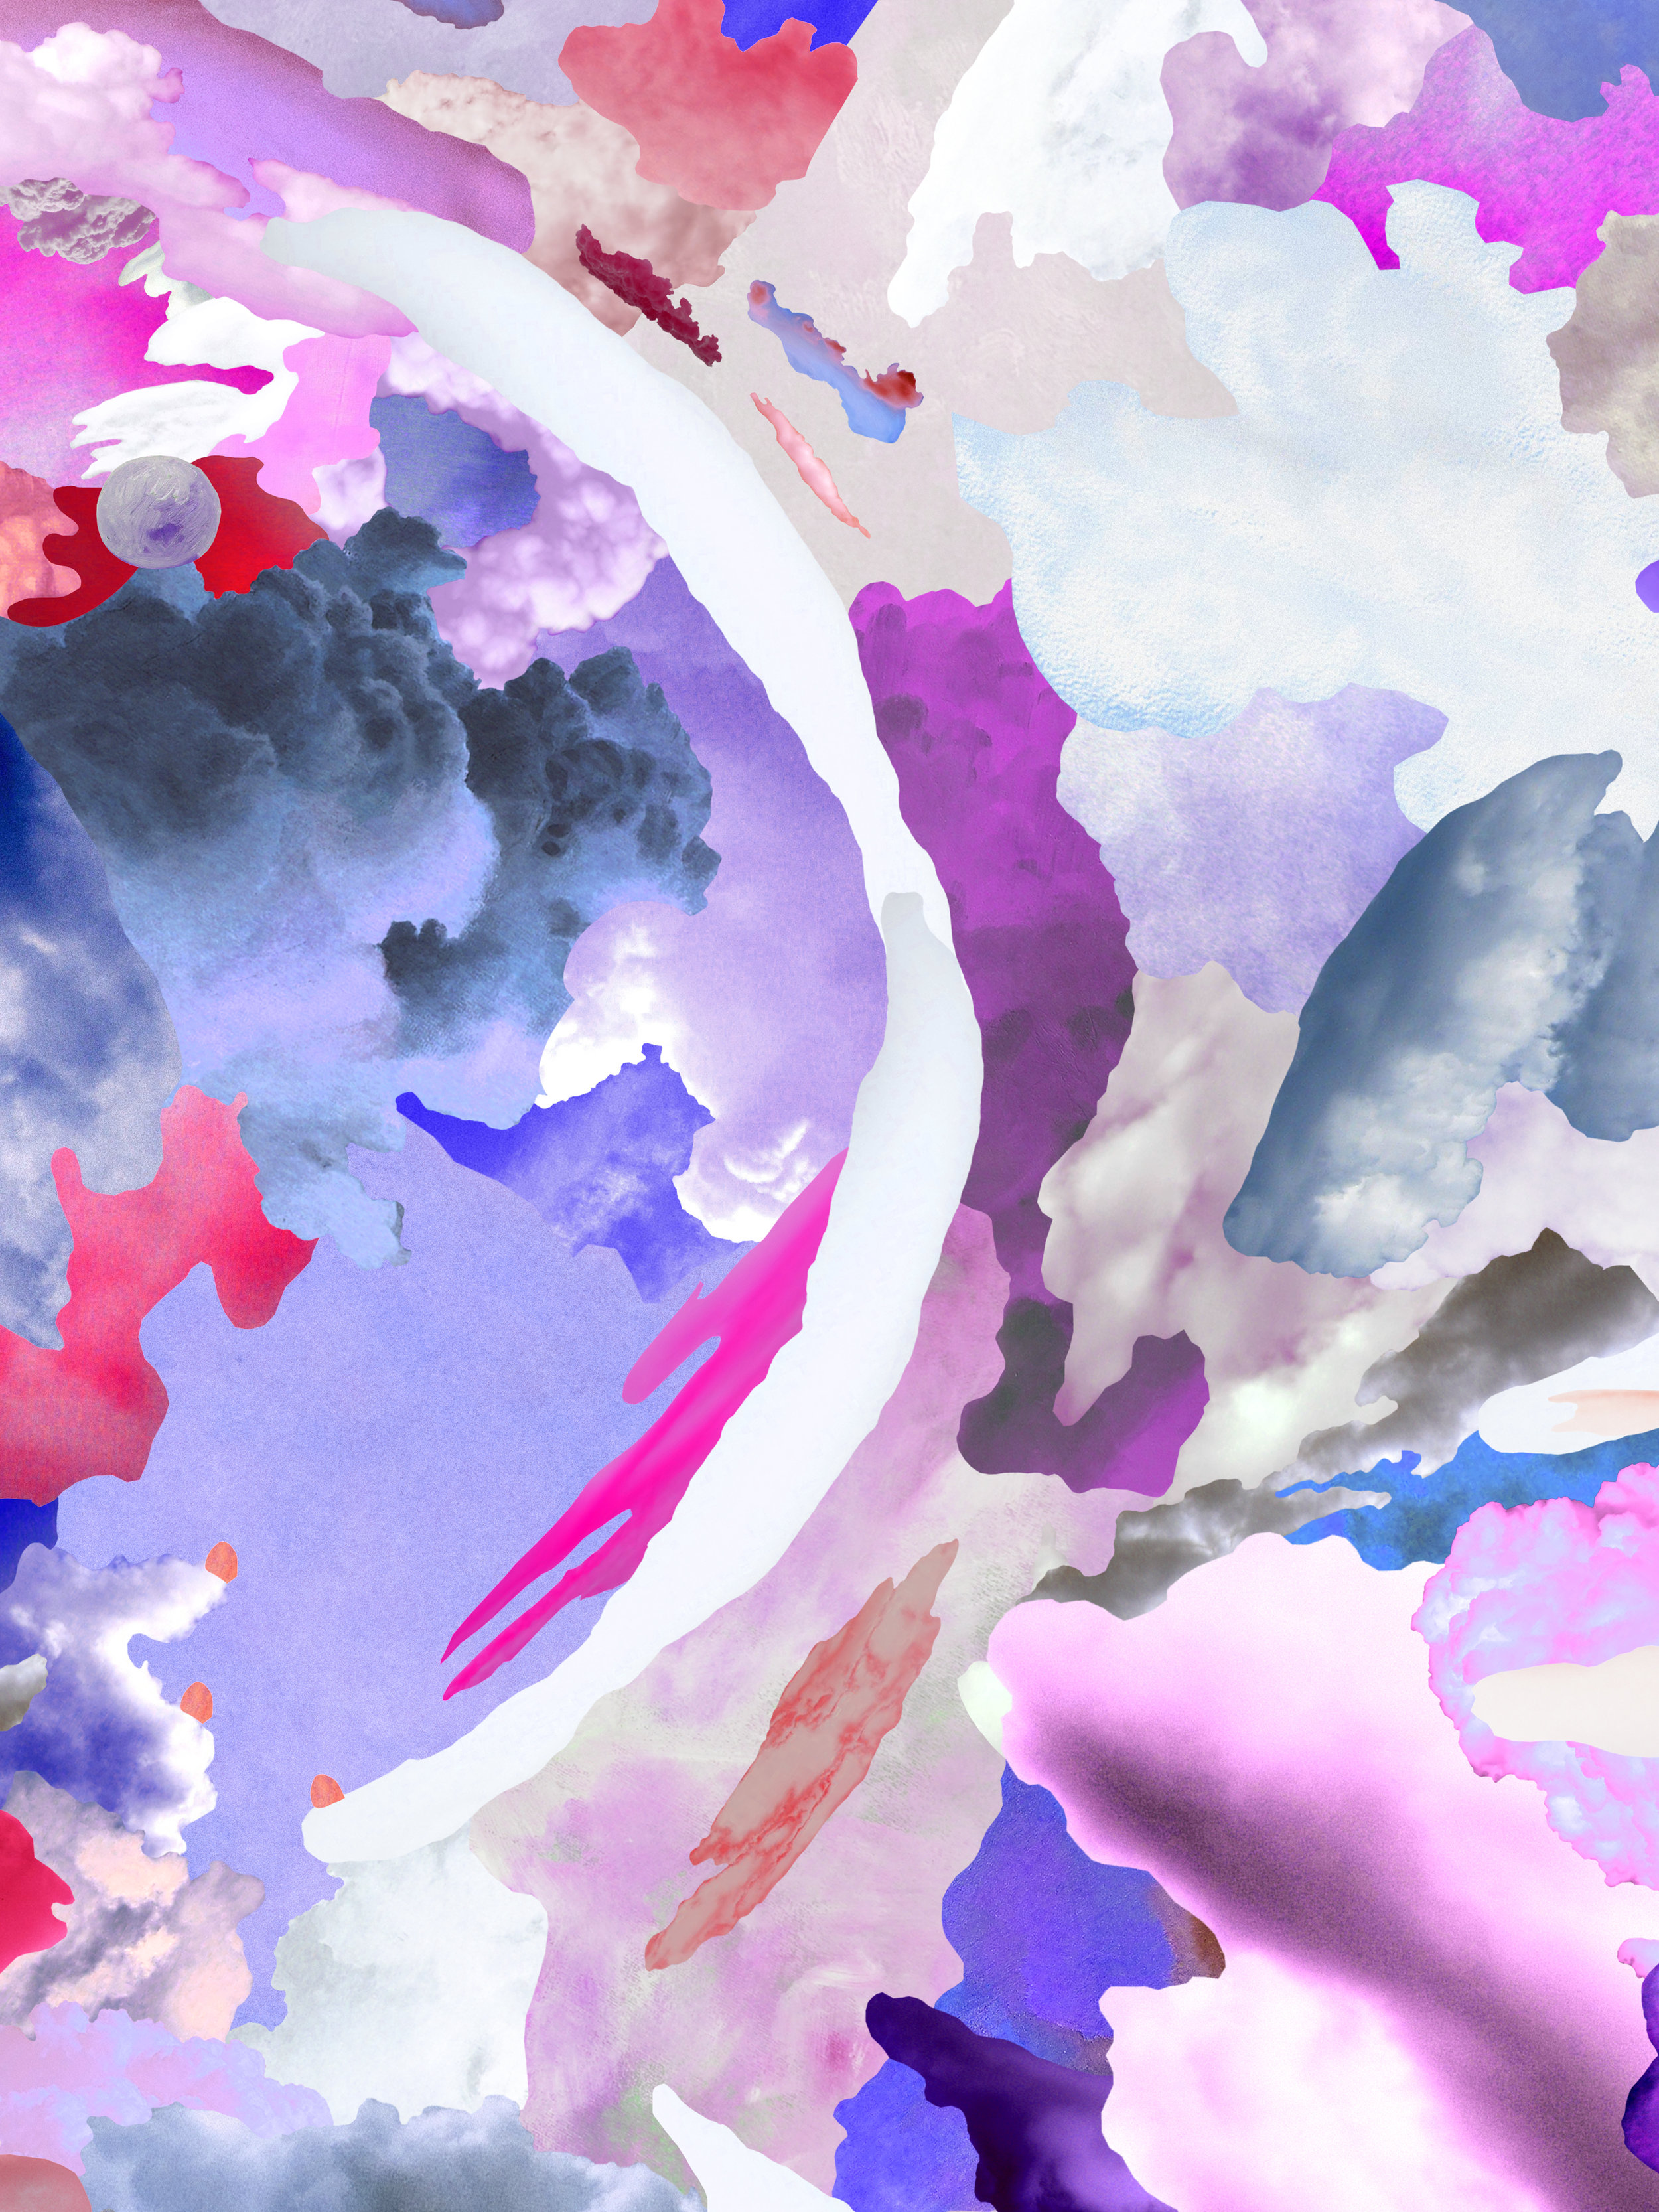 Case Simmons, Clouds X, Pigment Print, Digital Collage, Digital Art, Photoshop Collage, Contemporary Collage, M+B Gallery, Los Angeles, Art, Fine Art